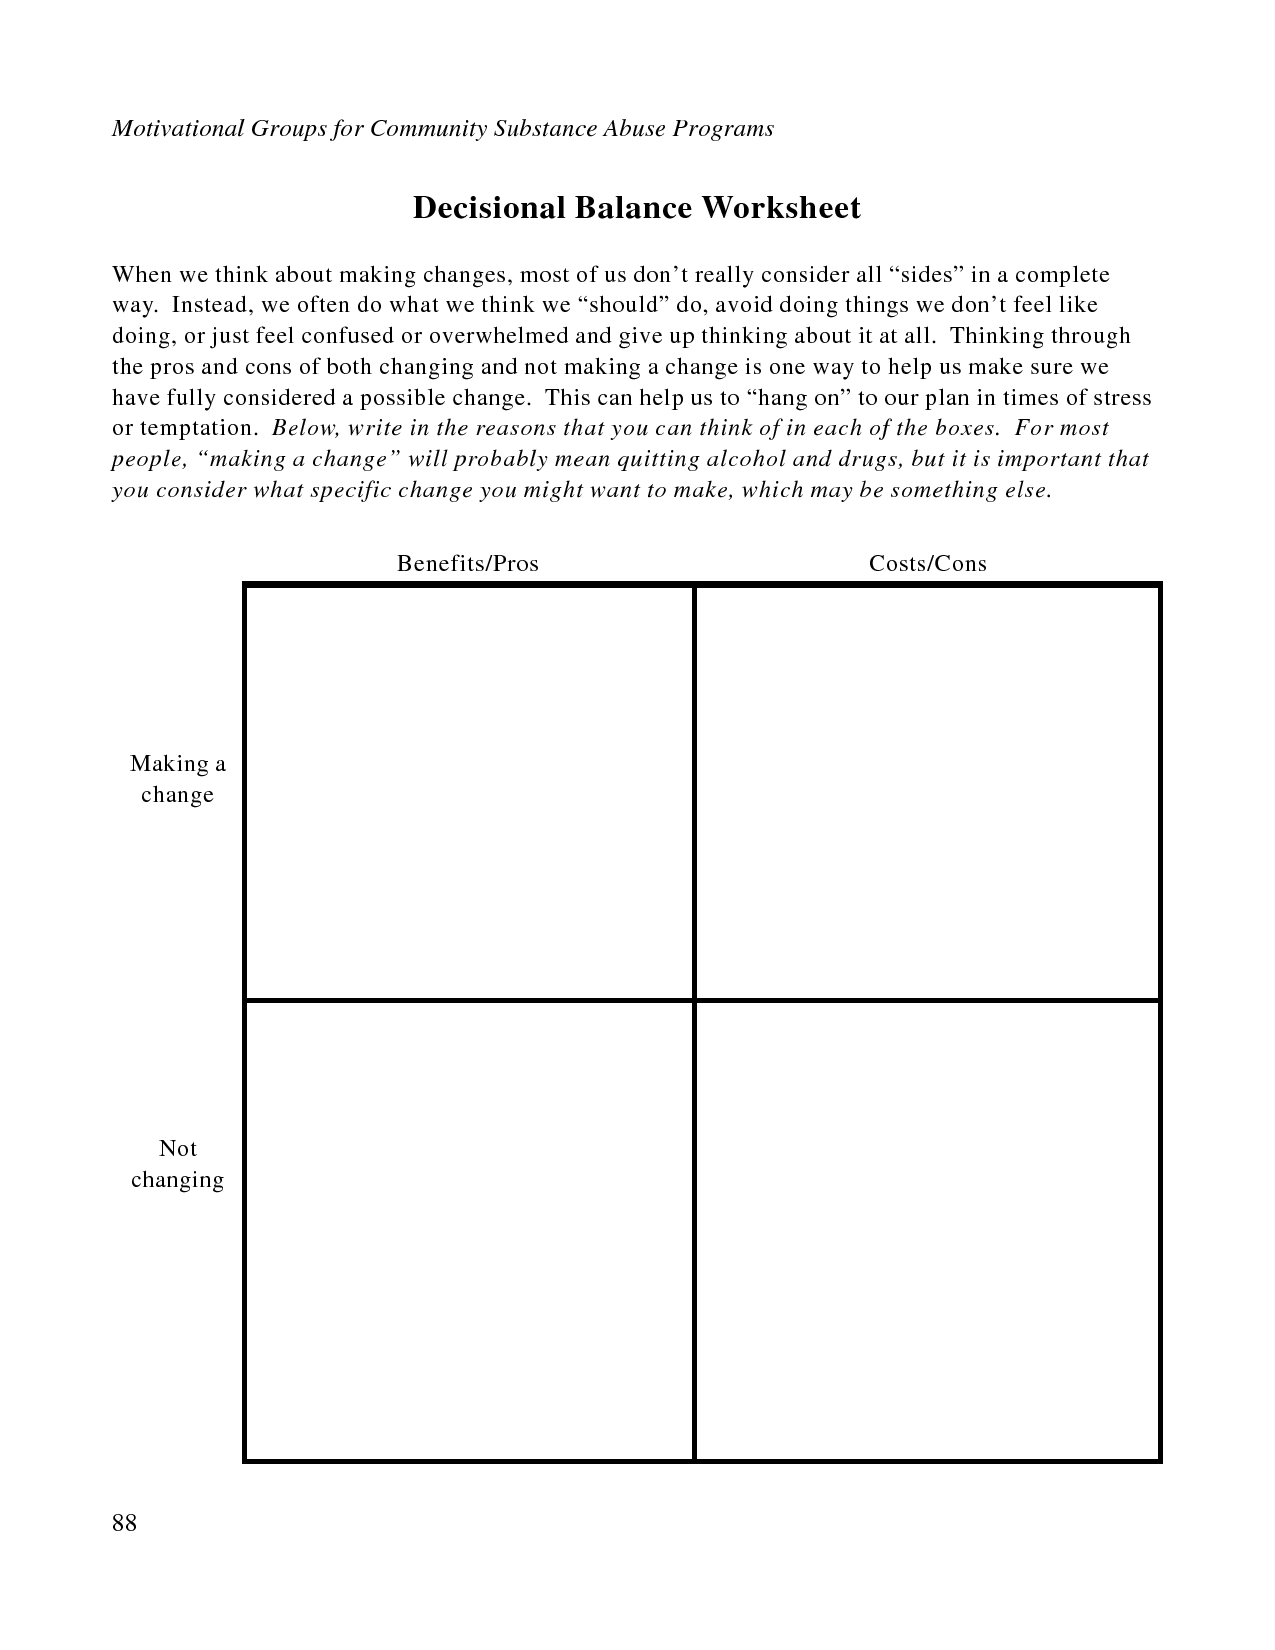 worksheet Ocd Worksheets free printable dbt worksheets decisional balance worksheet pdf pdf